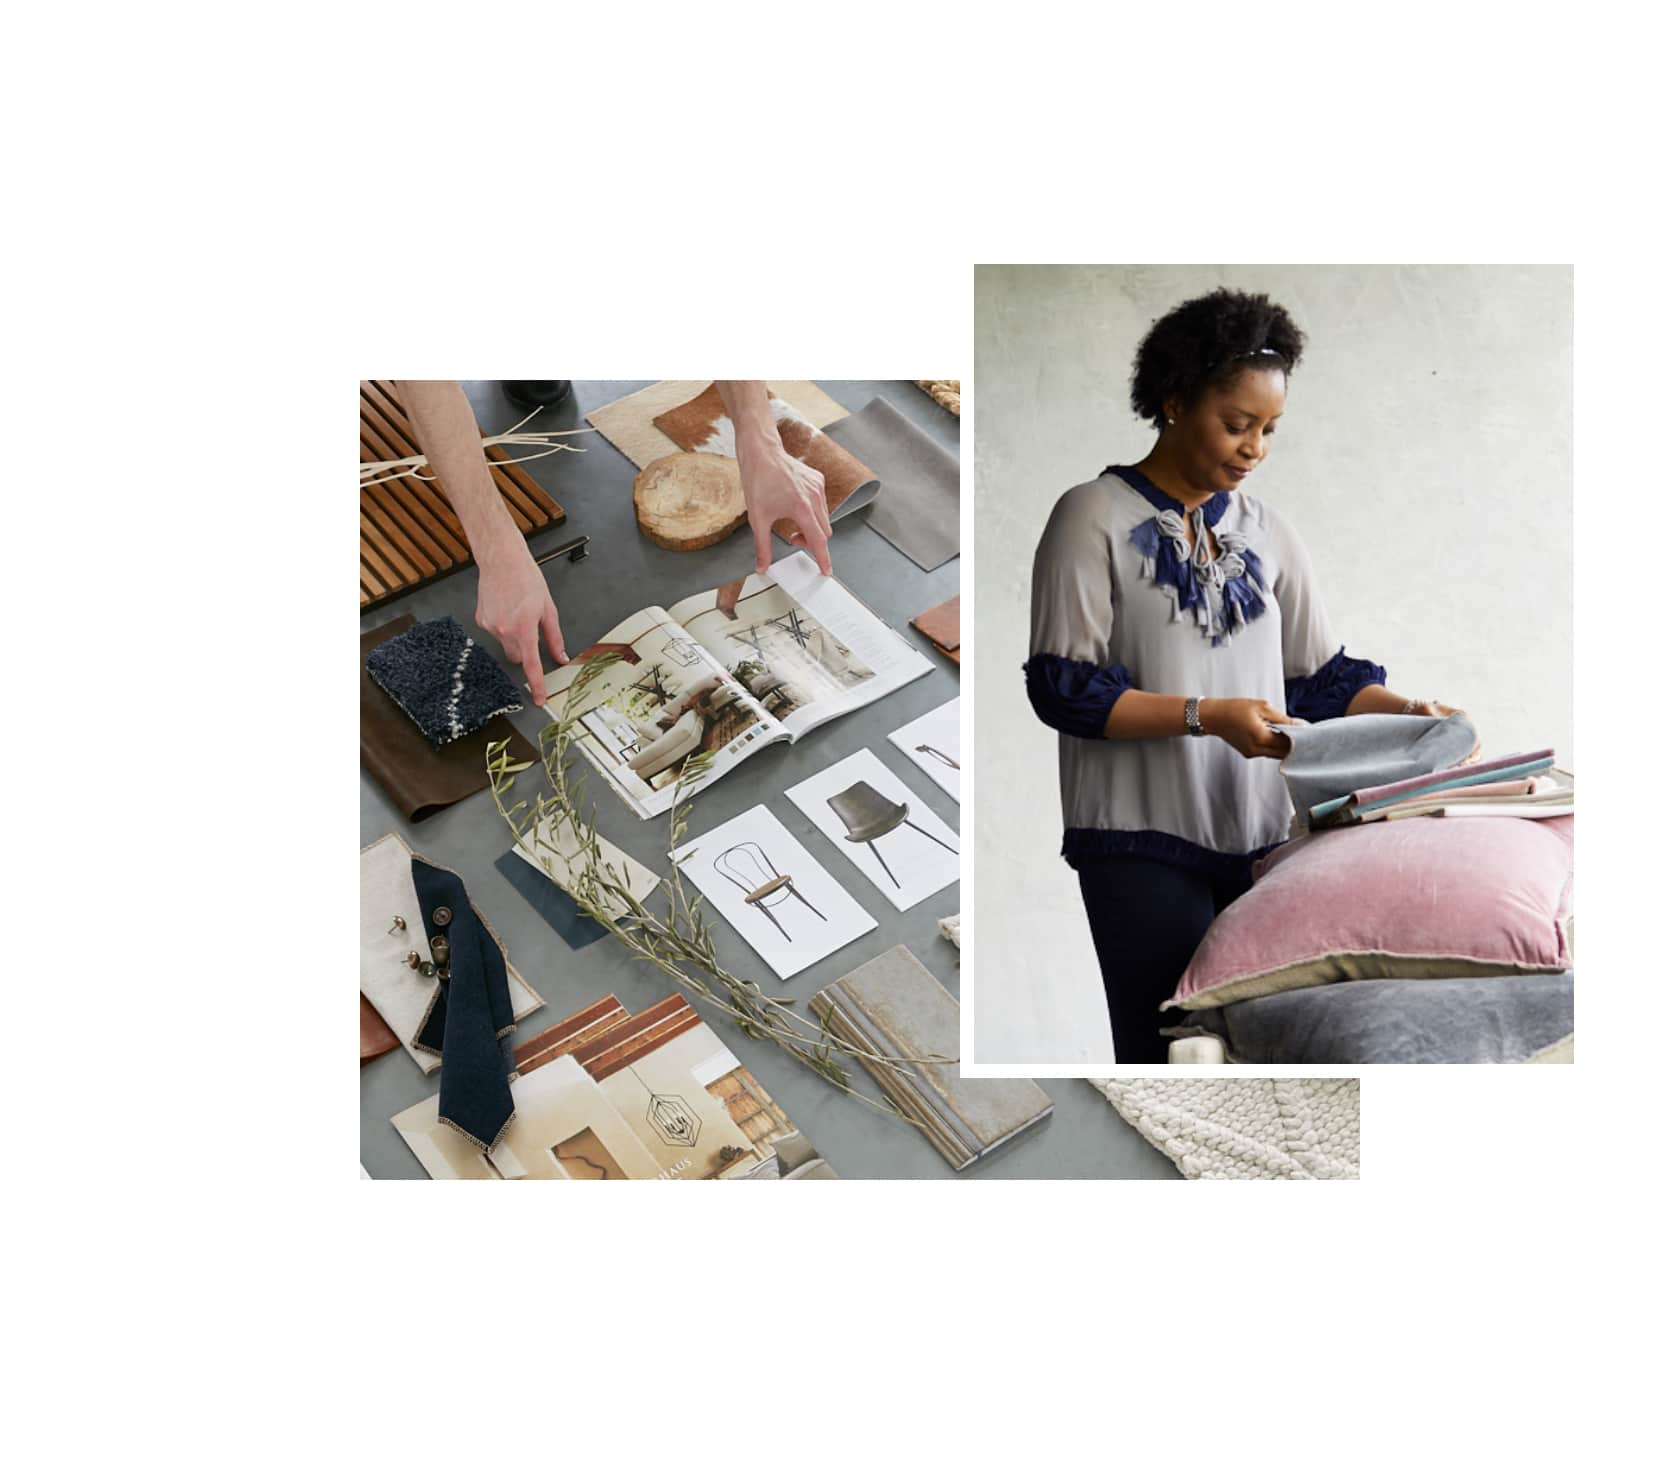 Our interior designers help you build the interior you want